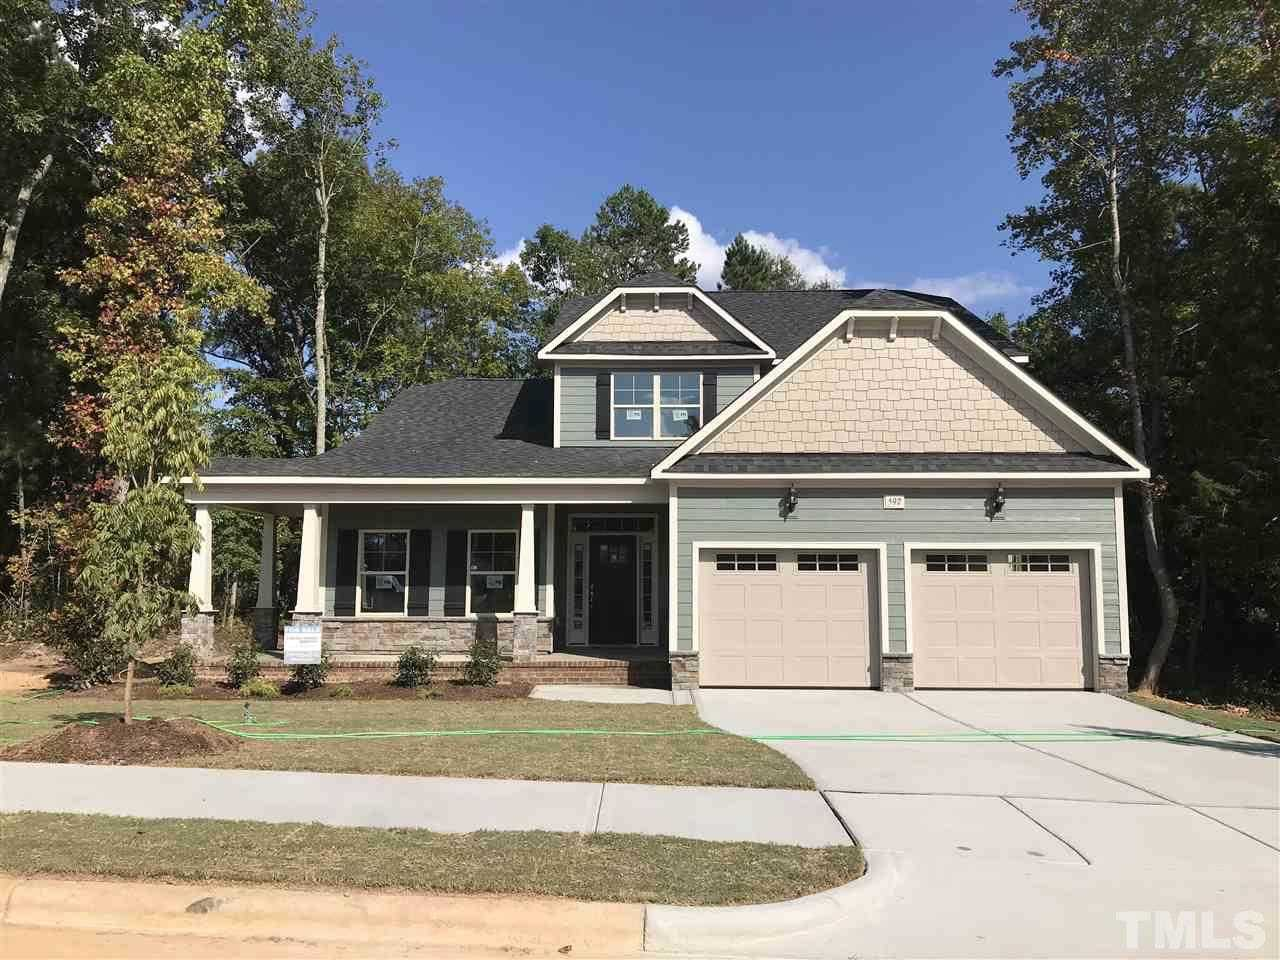 homes for sale in knightdale north carolina ernie behrle